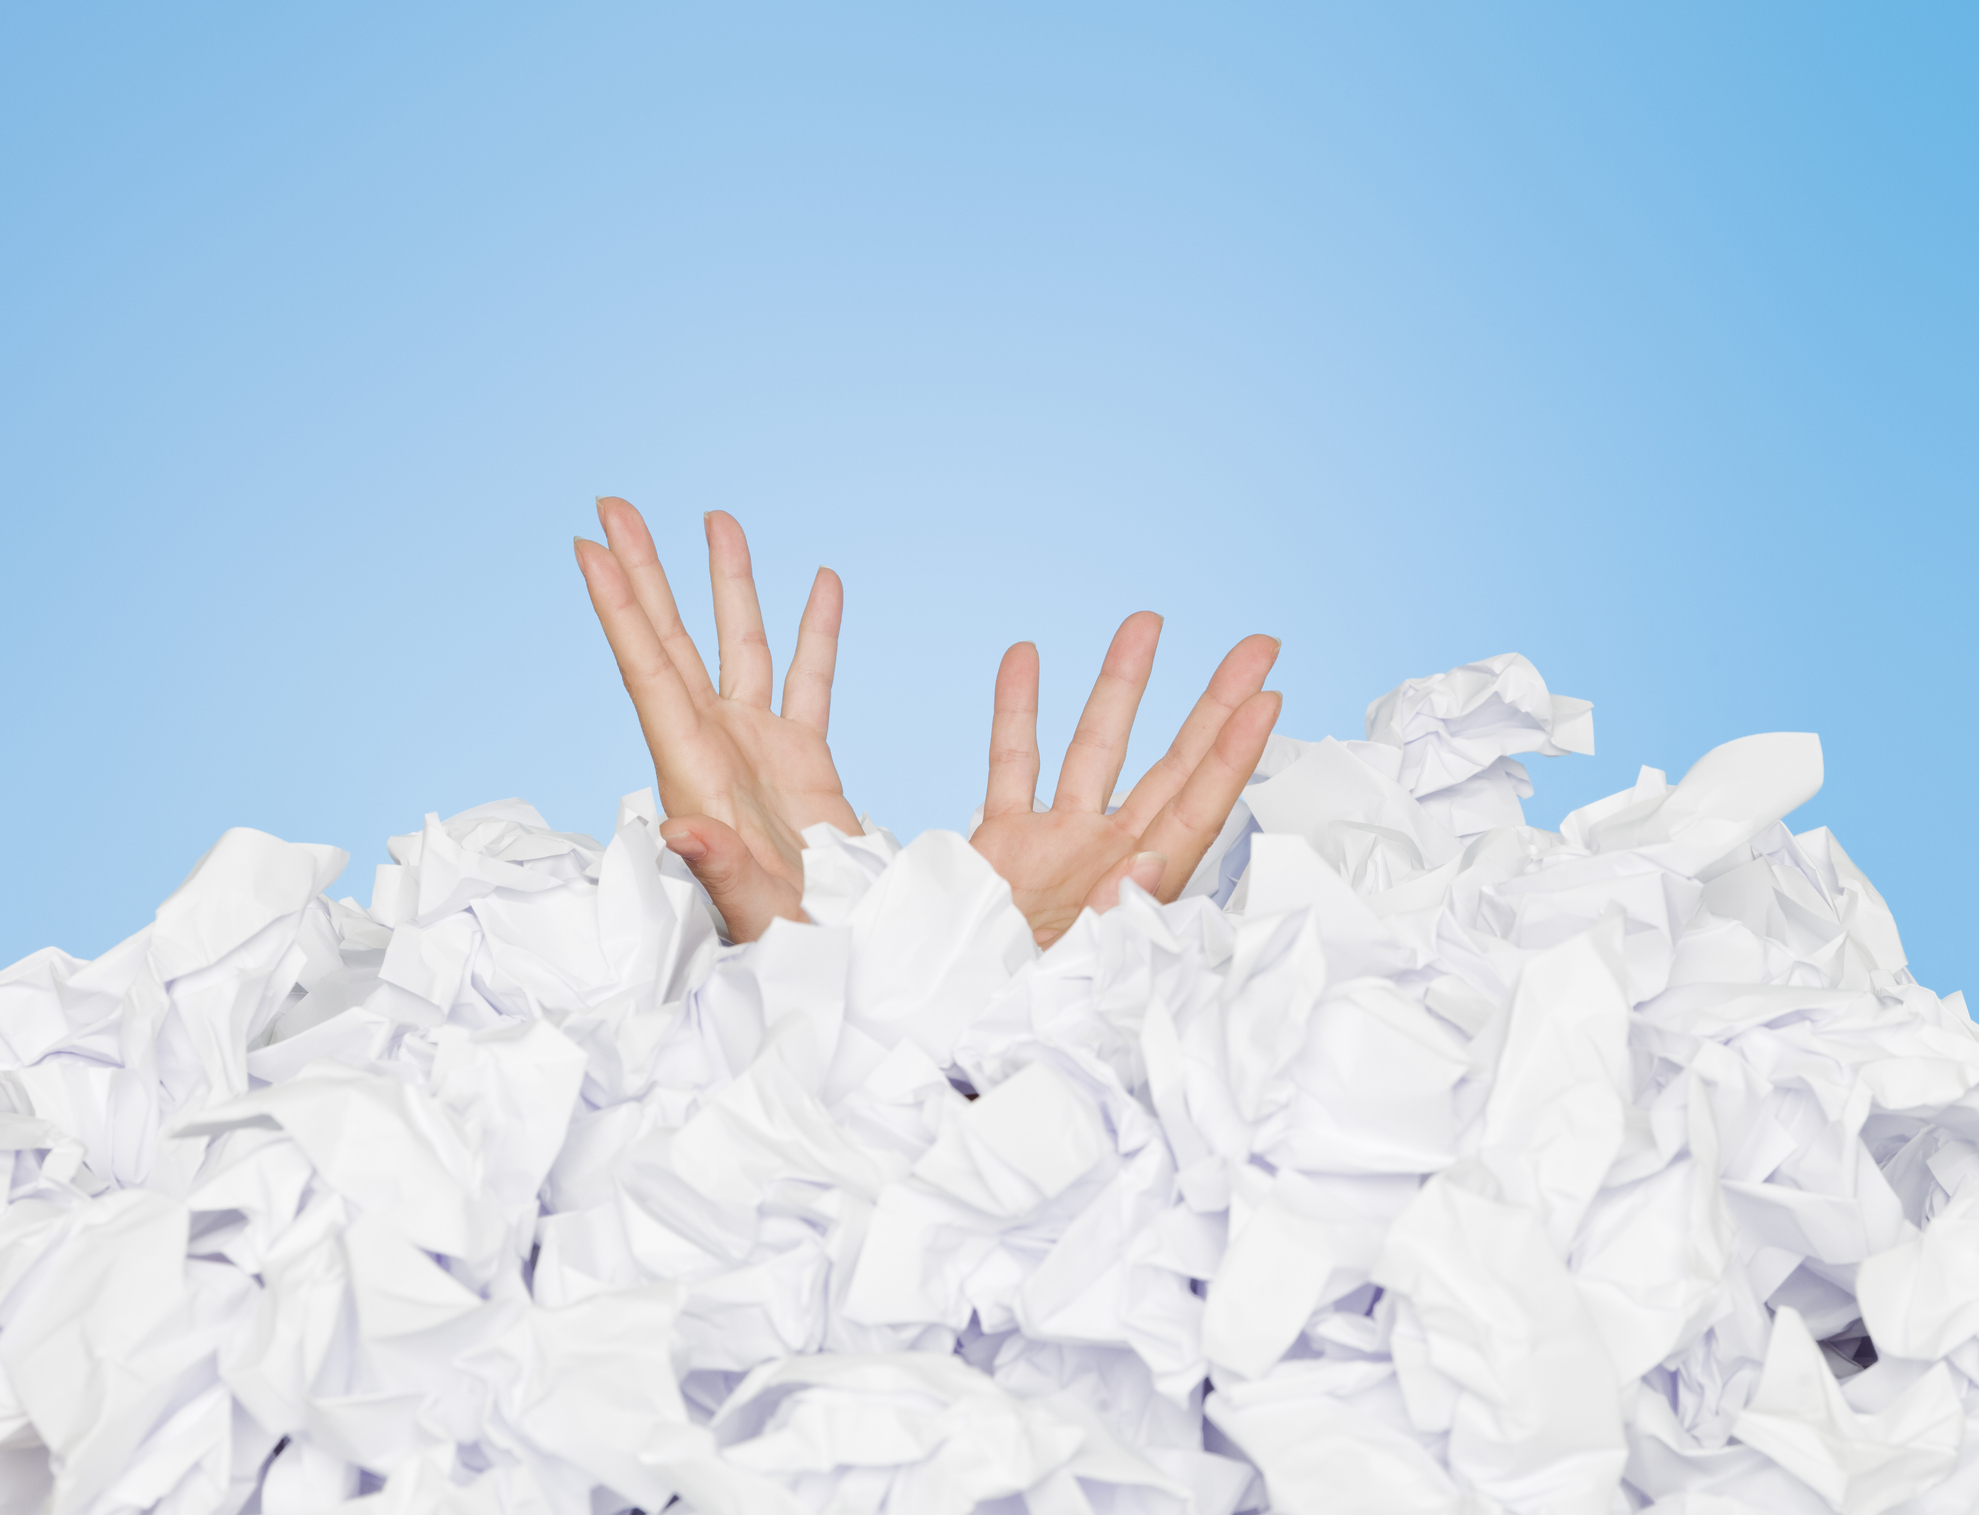 4 Ways transitioning to a paperless office can drive growth